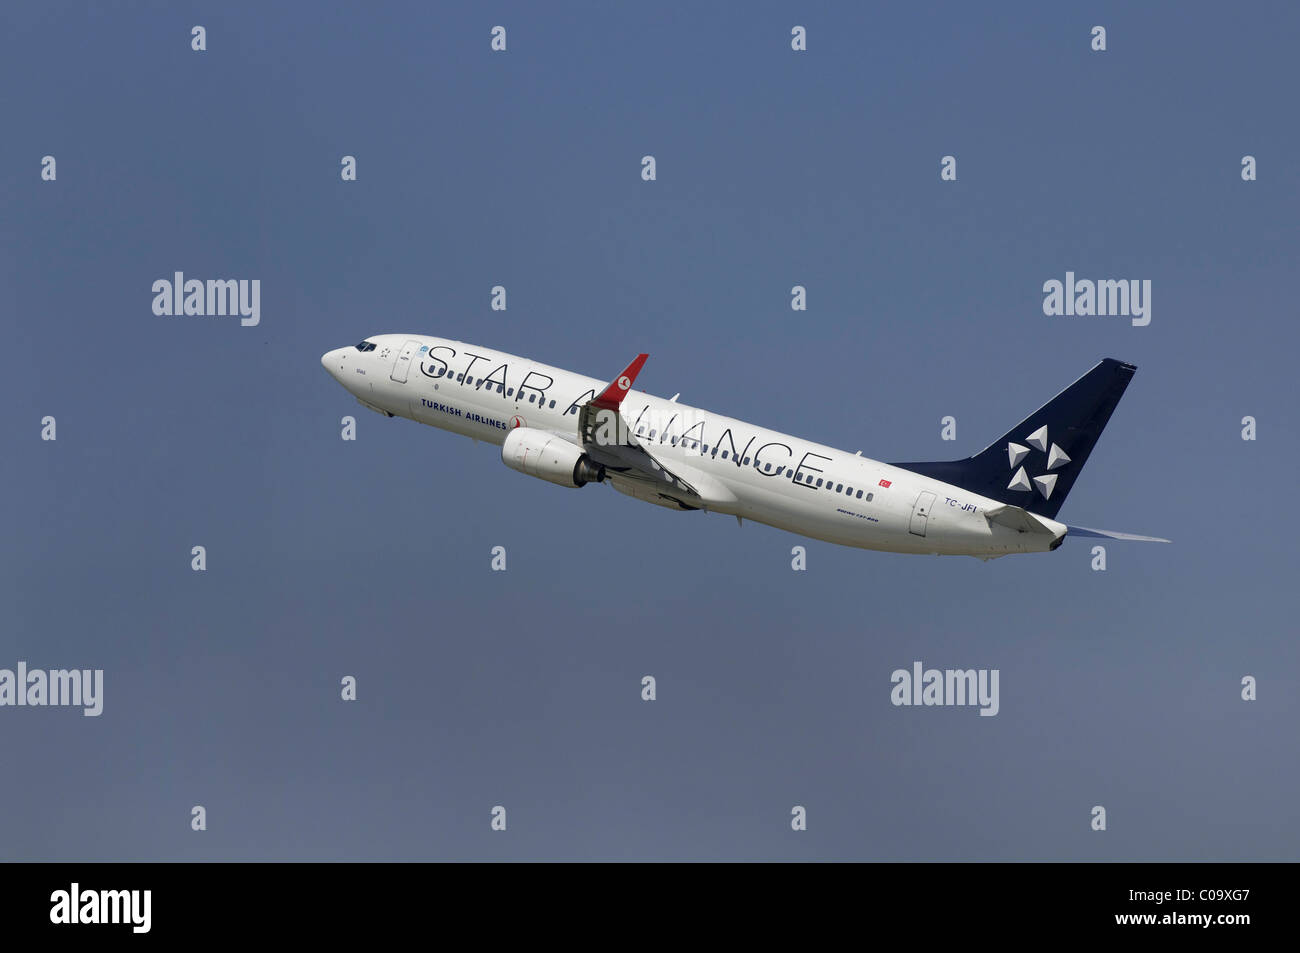 Commercial aircraft, climb, Turkish Airlines in European 'Star Alliance', with special painting - Stock Image